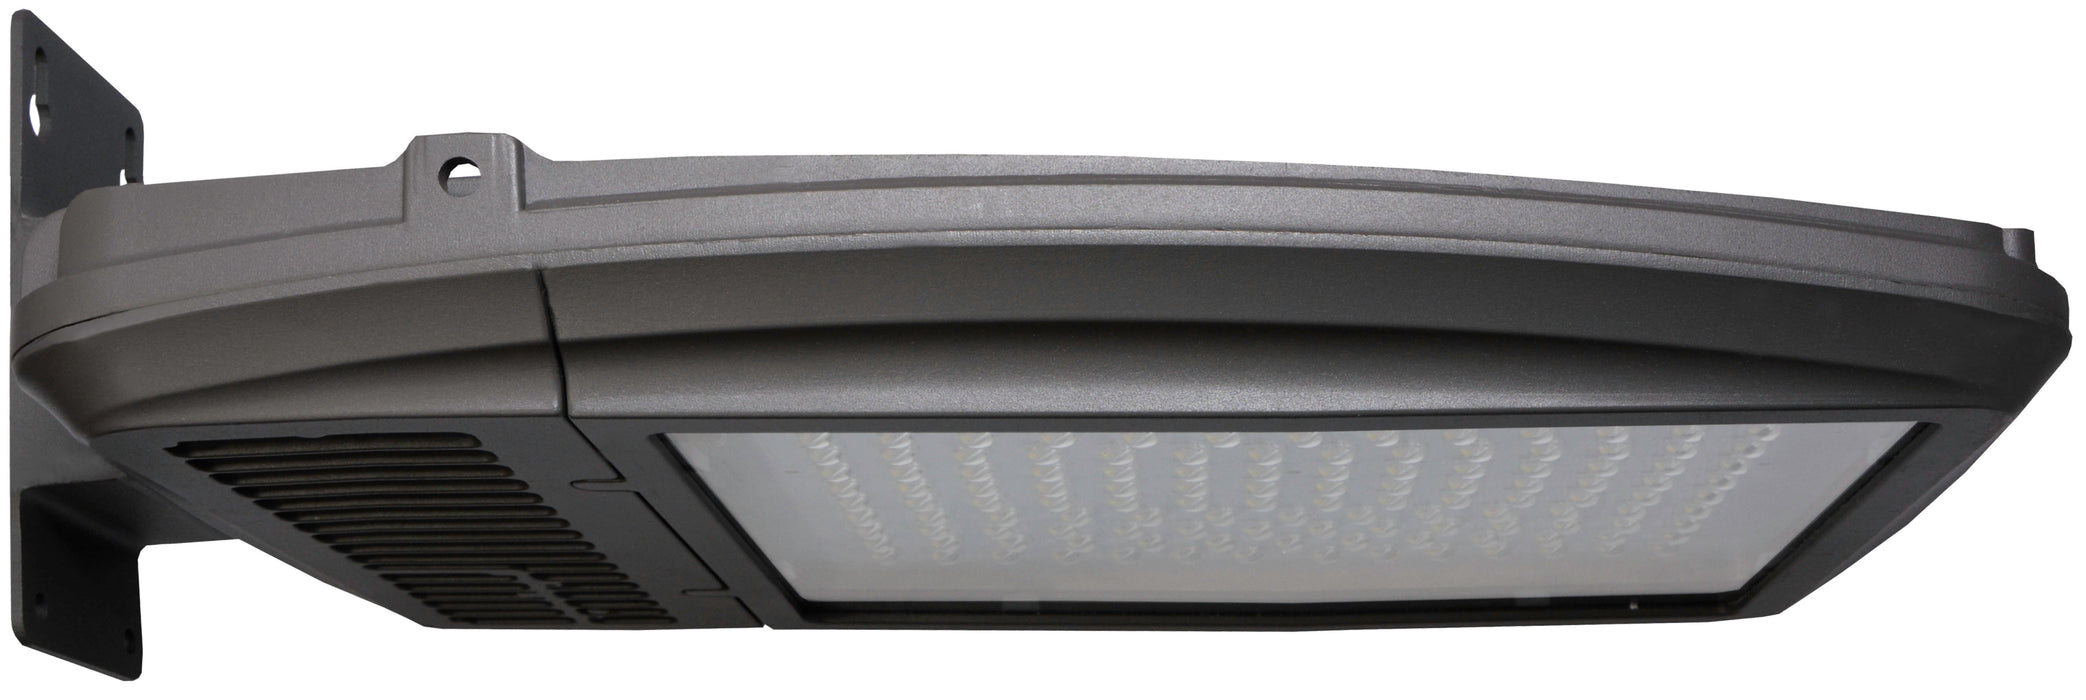 ( DURAGUARD - KH45 SERIES - 167W ) 400W EQUIVALENT HID 120-277V  - KH45 SERIES LED DURALED LARGE HAMPTON KITTY HAWK AREA LIGHT / FLOOD LIGHT / WALL PACK BRONZE FINISH